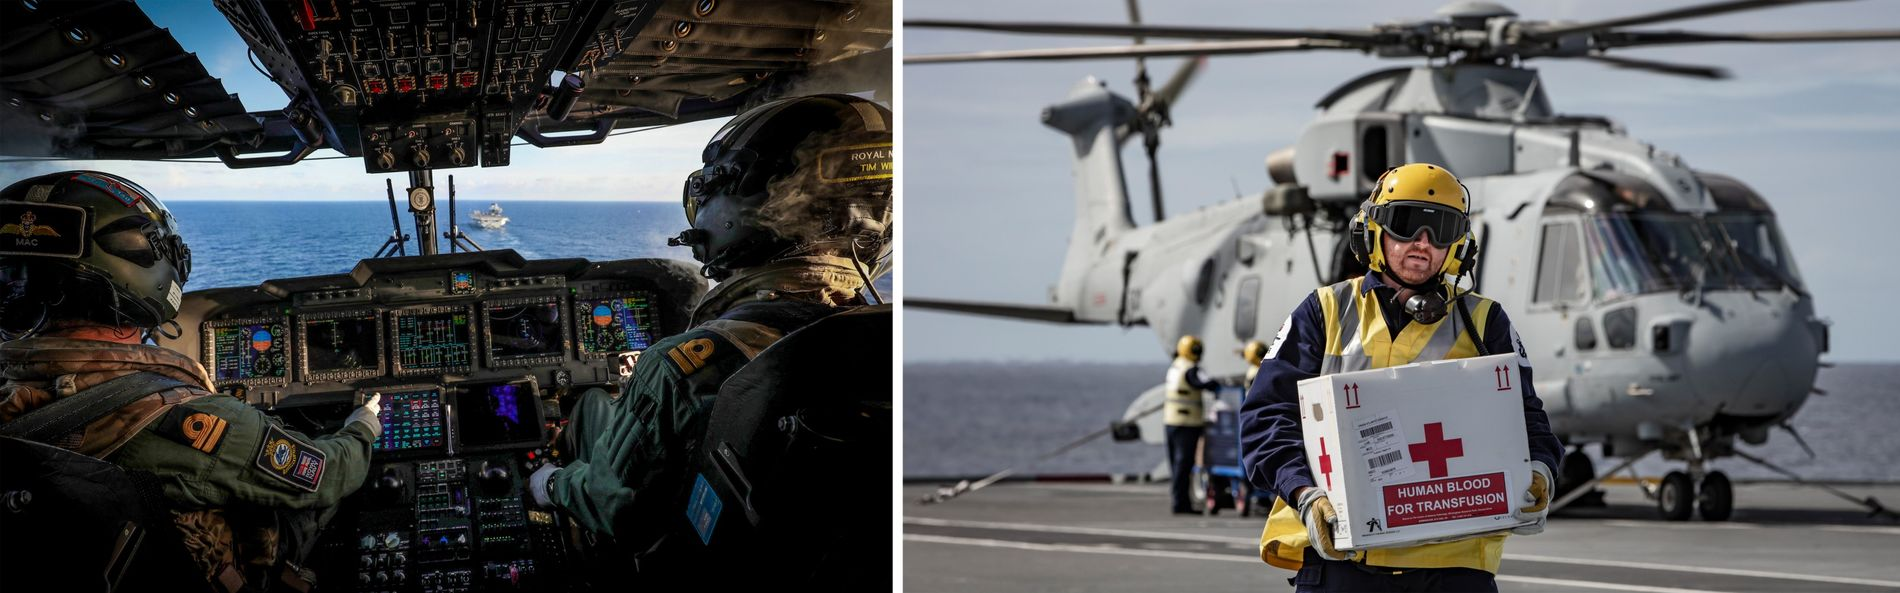 A Merlin Mk2 helicopter approaches the aircraft carrier (left) while a delivery of blood for transfusion ...